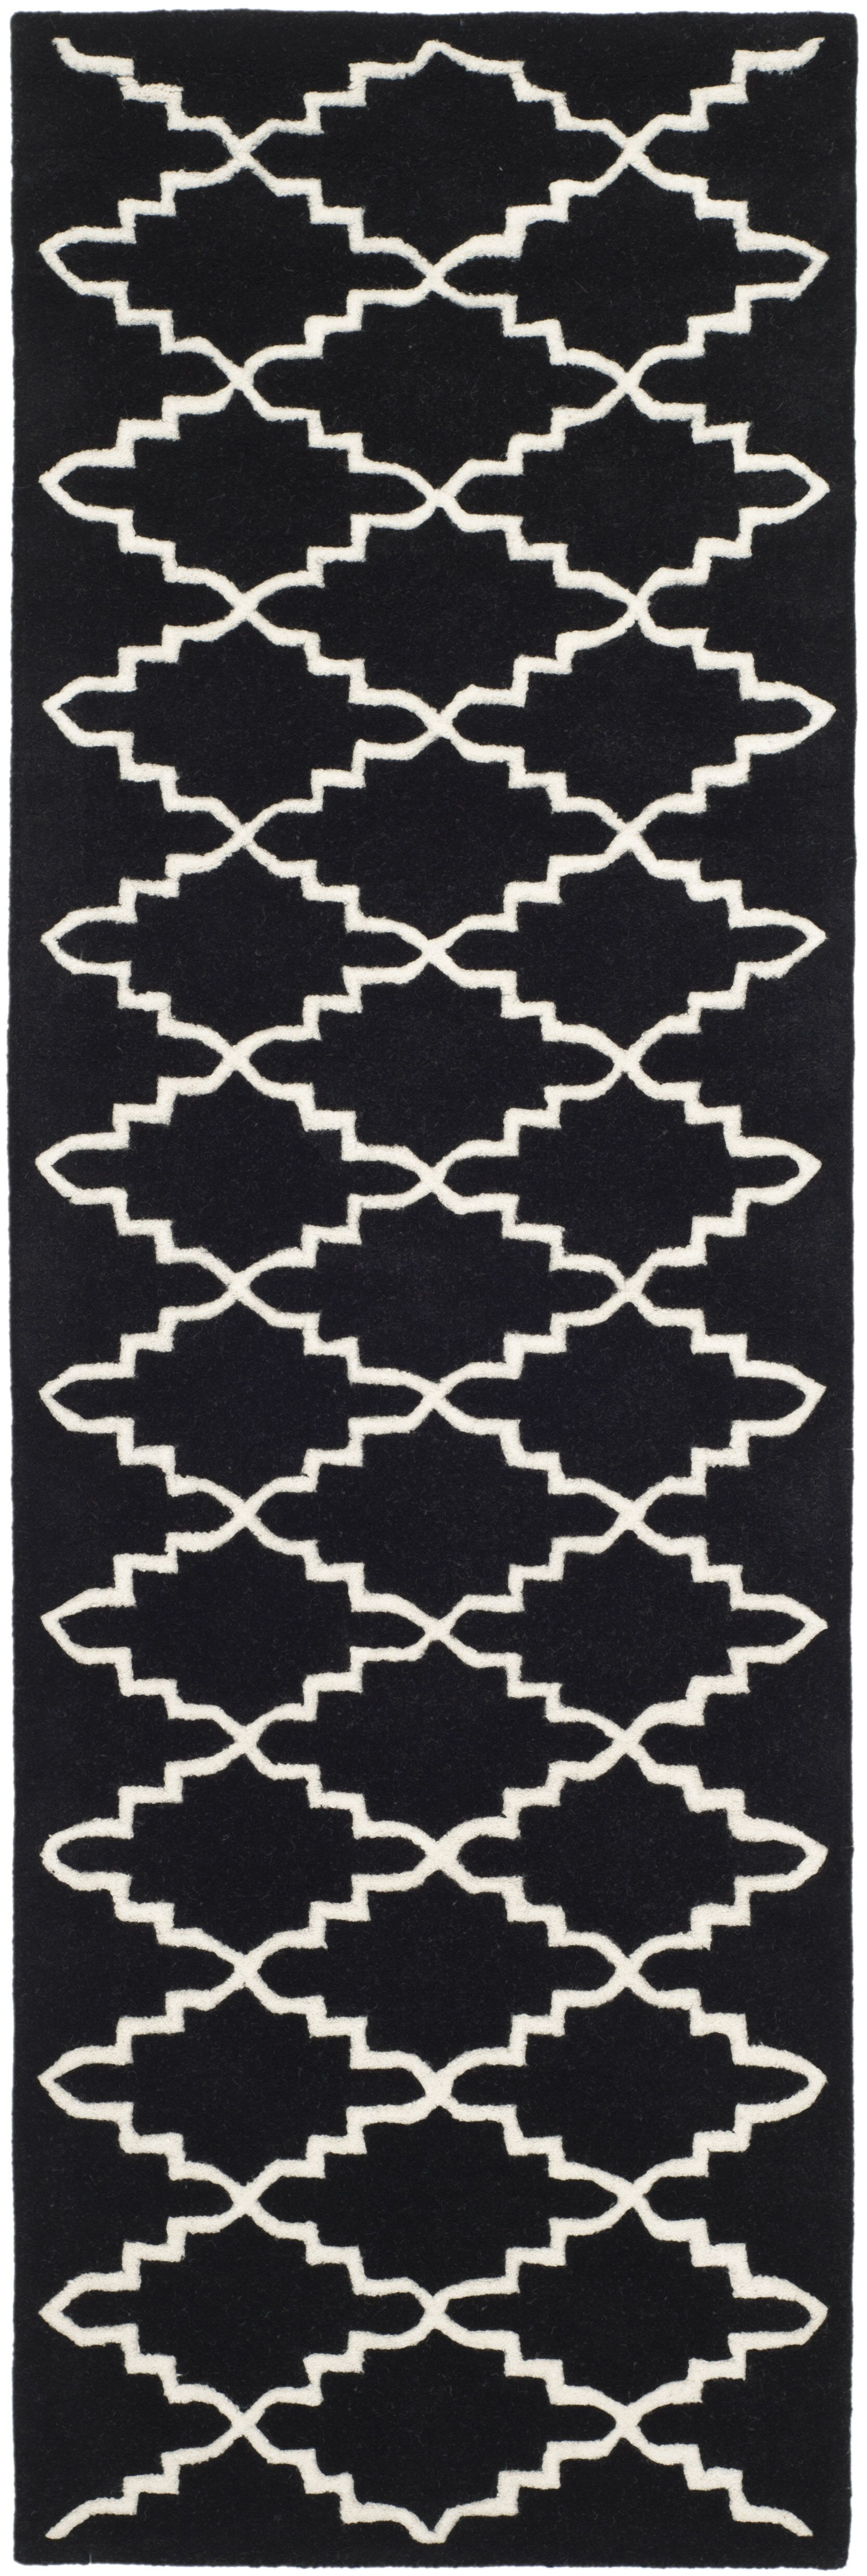 Wilkin Hand-Tufted Wool Black/Ivory Area Rug Rug Size: Runner 2'3